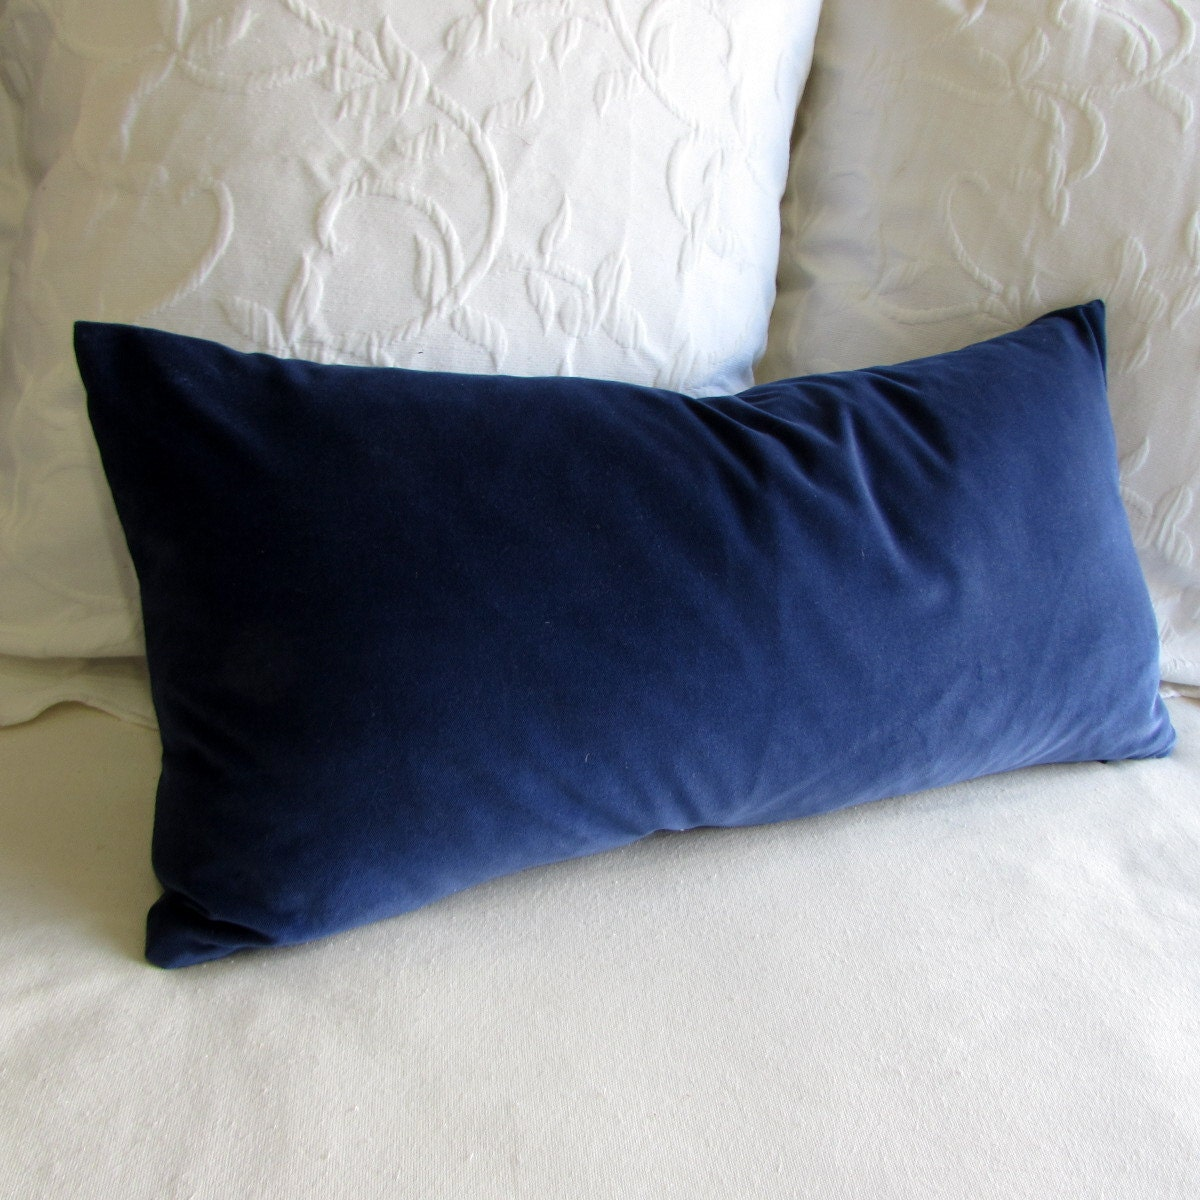 Navy Velvet Lumbar Rectangular Bolster Pillow 13x26